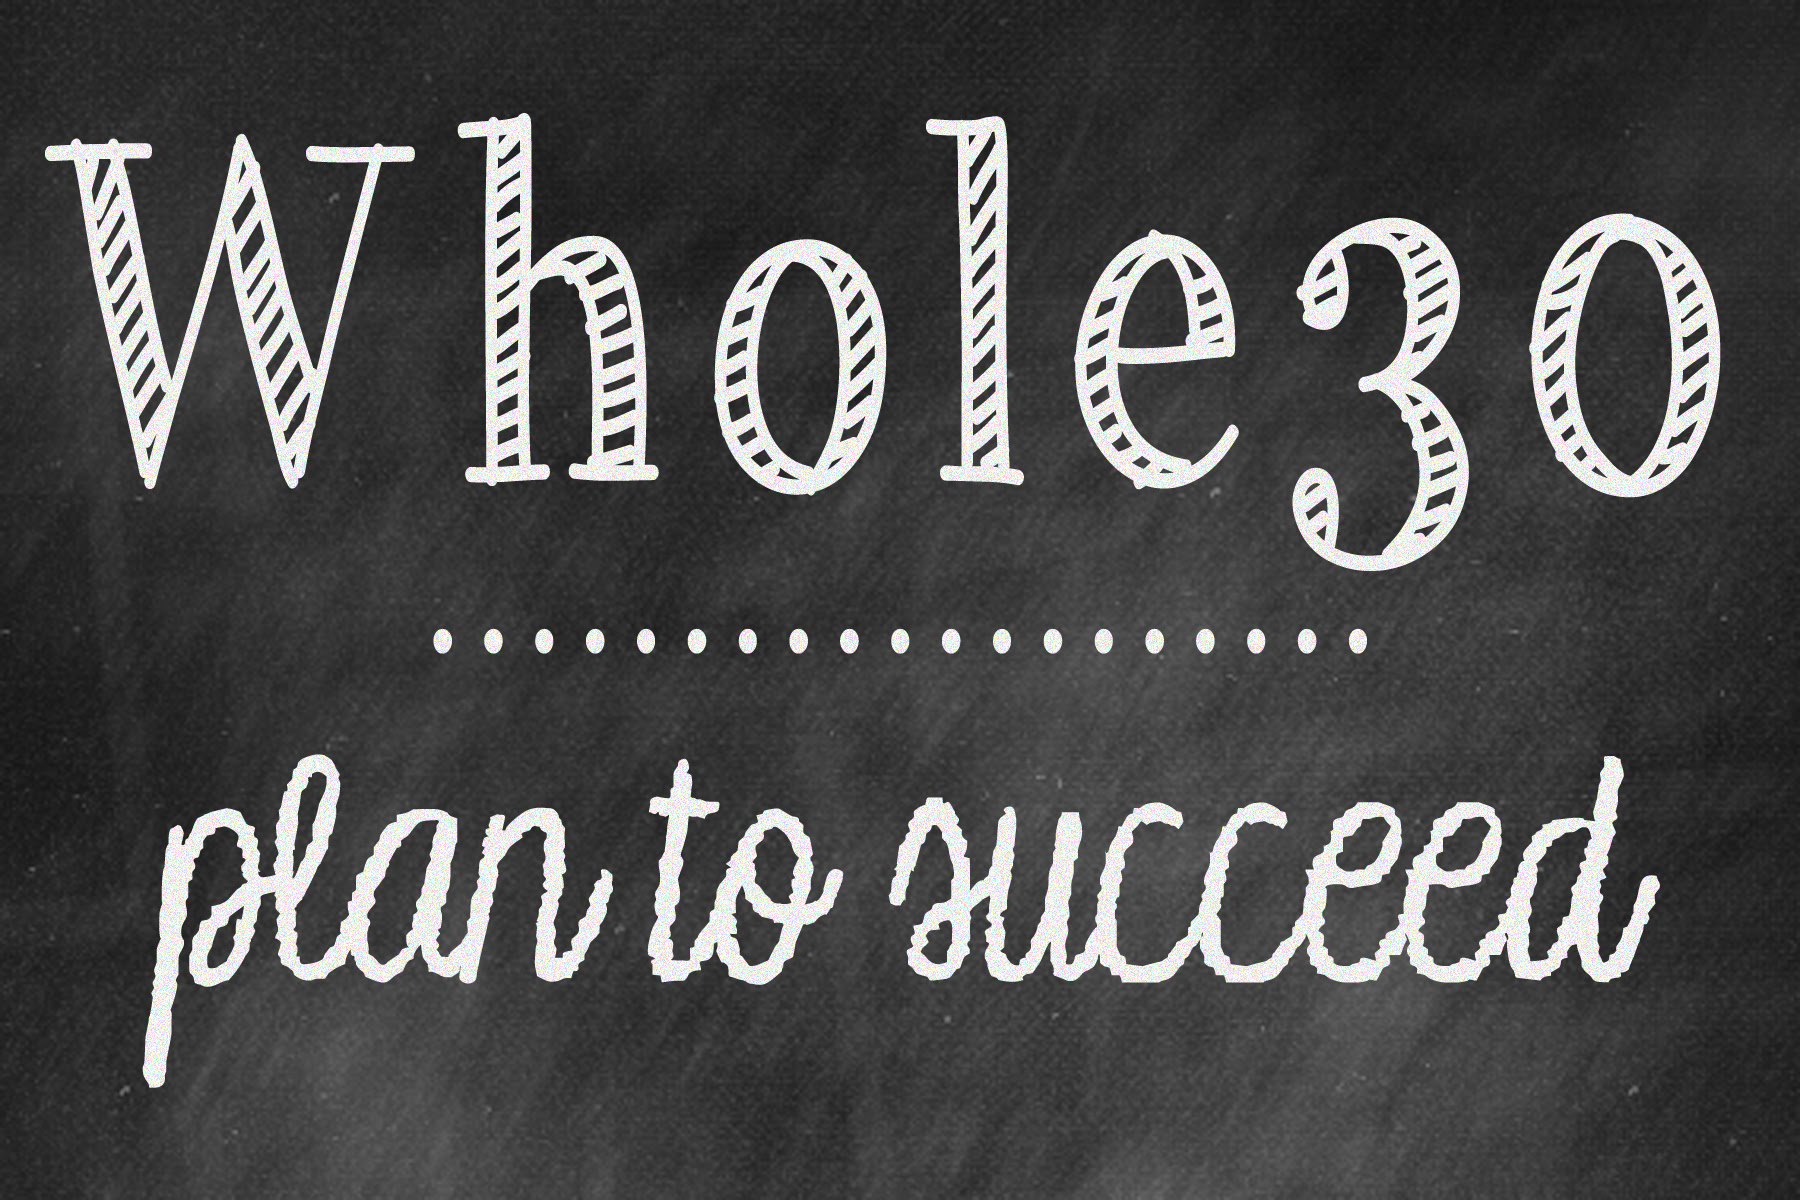 Whole30 plan to succeed